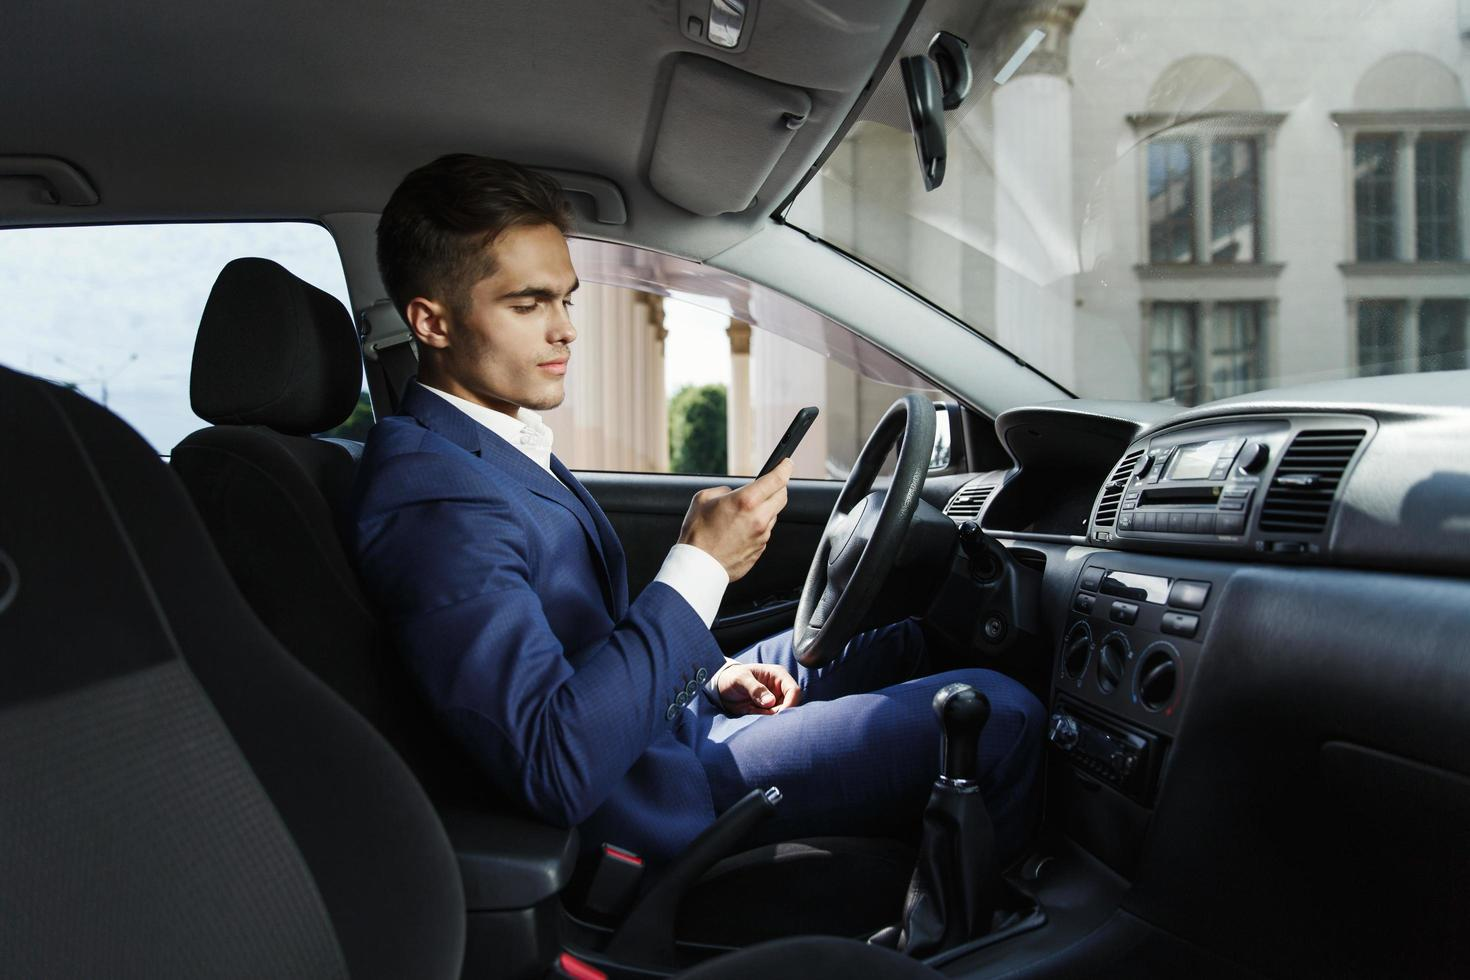 Man checking his phone in the car photo